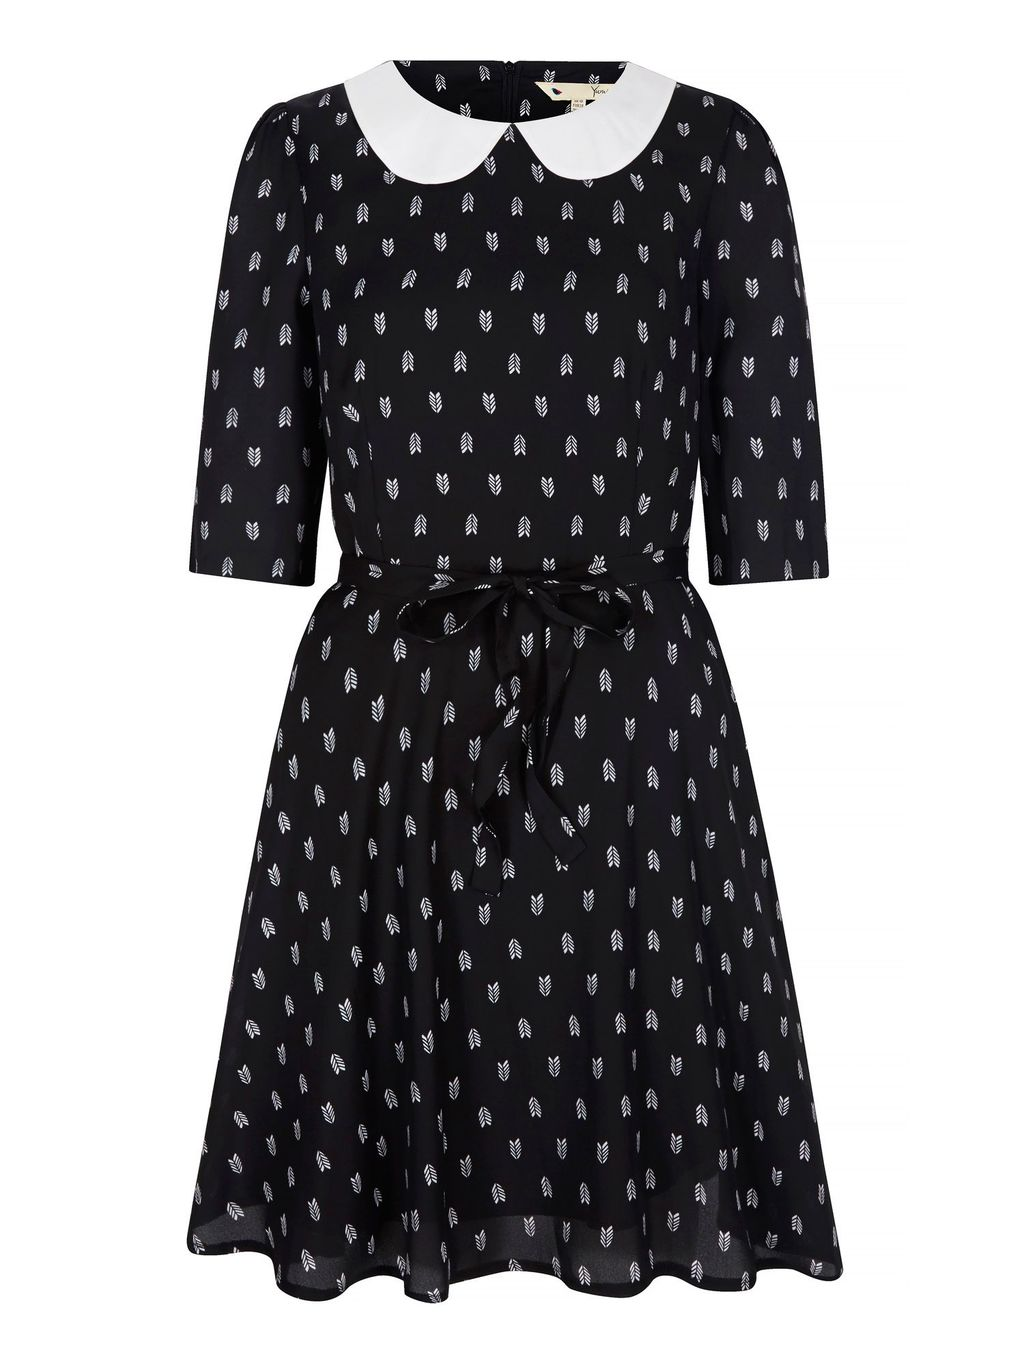 Arrow Print Collar Dress, Black - secondary colour: white; predominant colour: black; occasions: casual, creative work; length: just above the knee; fit: fitted at waist & bust; style: fit & flare; fibres: polyester/polyamide - 100%; neckline: no opening/shirt collar/peter pan; sleeve length: half sleeve; sleeve style: standard; texture group: sheer fabrics/chiffon/organza etc.; pattern type: fabric; pattern size: standard; pattern: patterned/print; season: a/w 2015; wardrobe: highlight